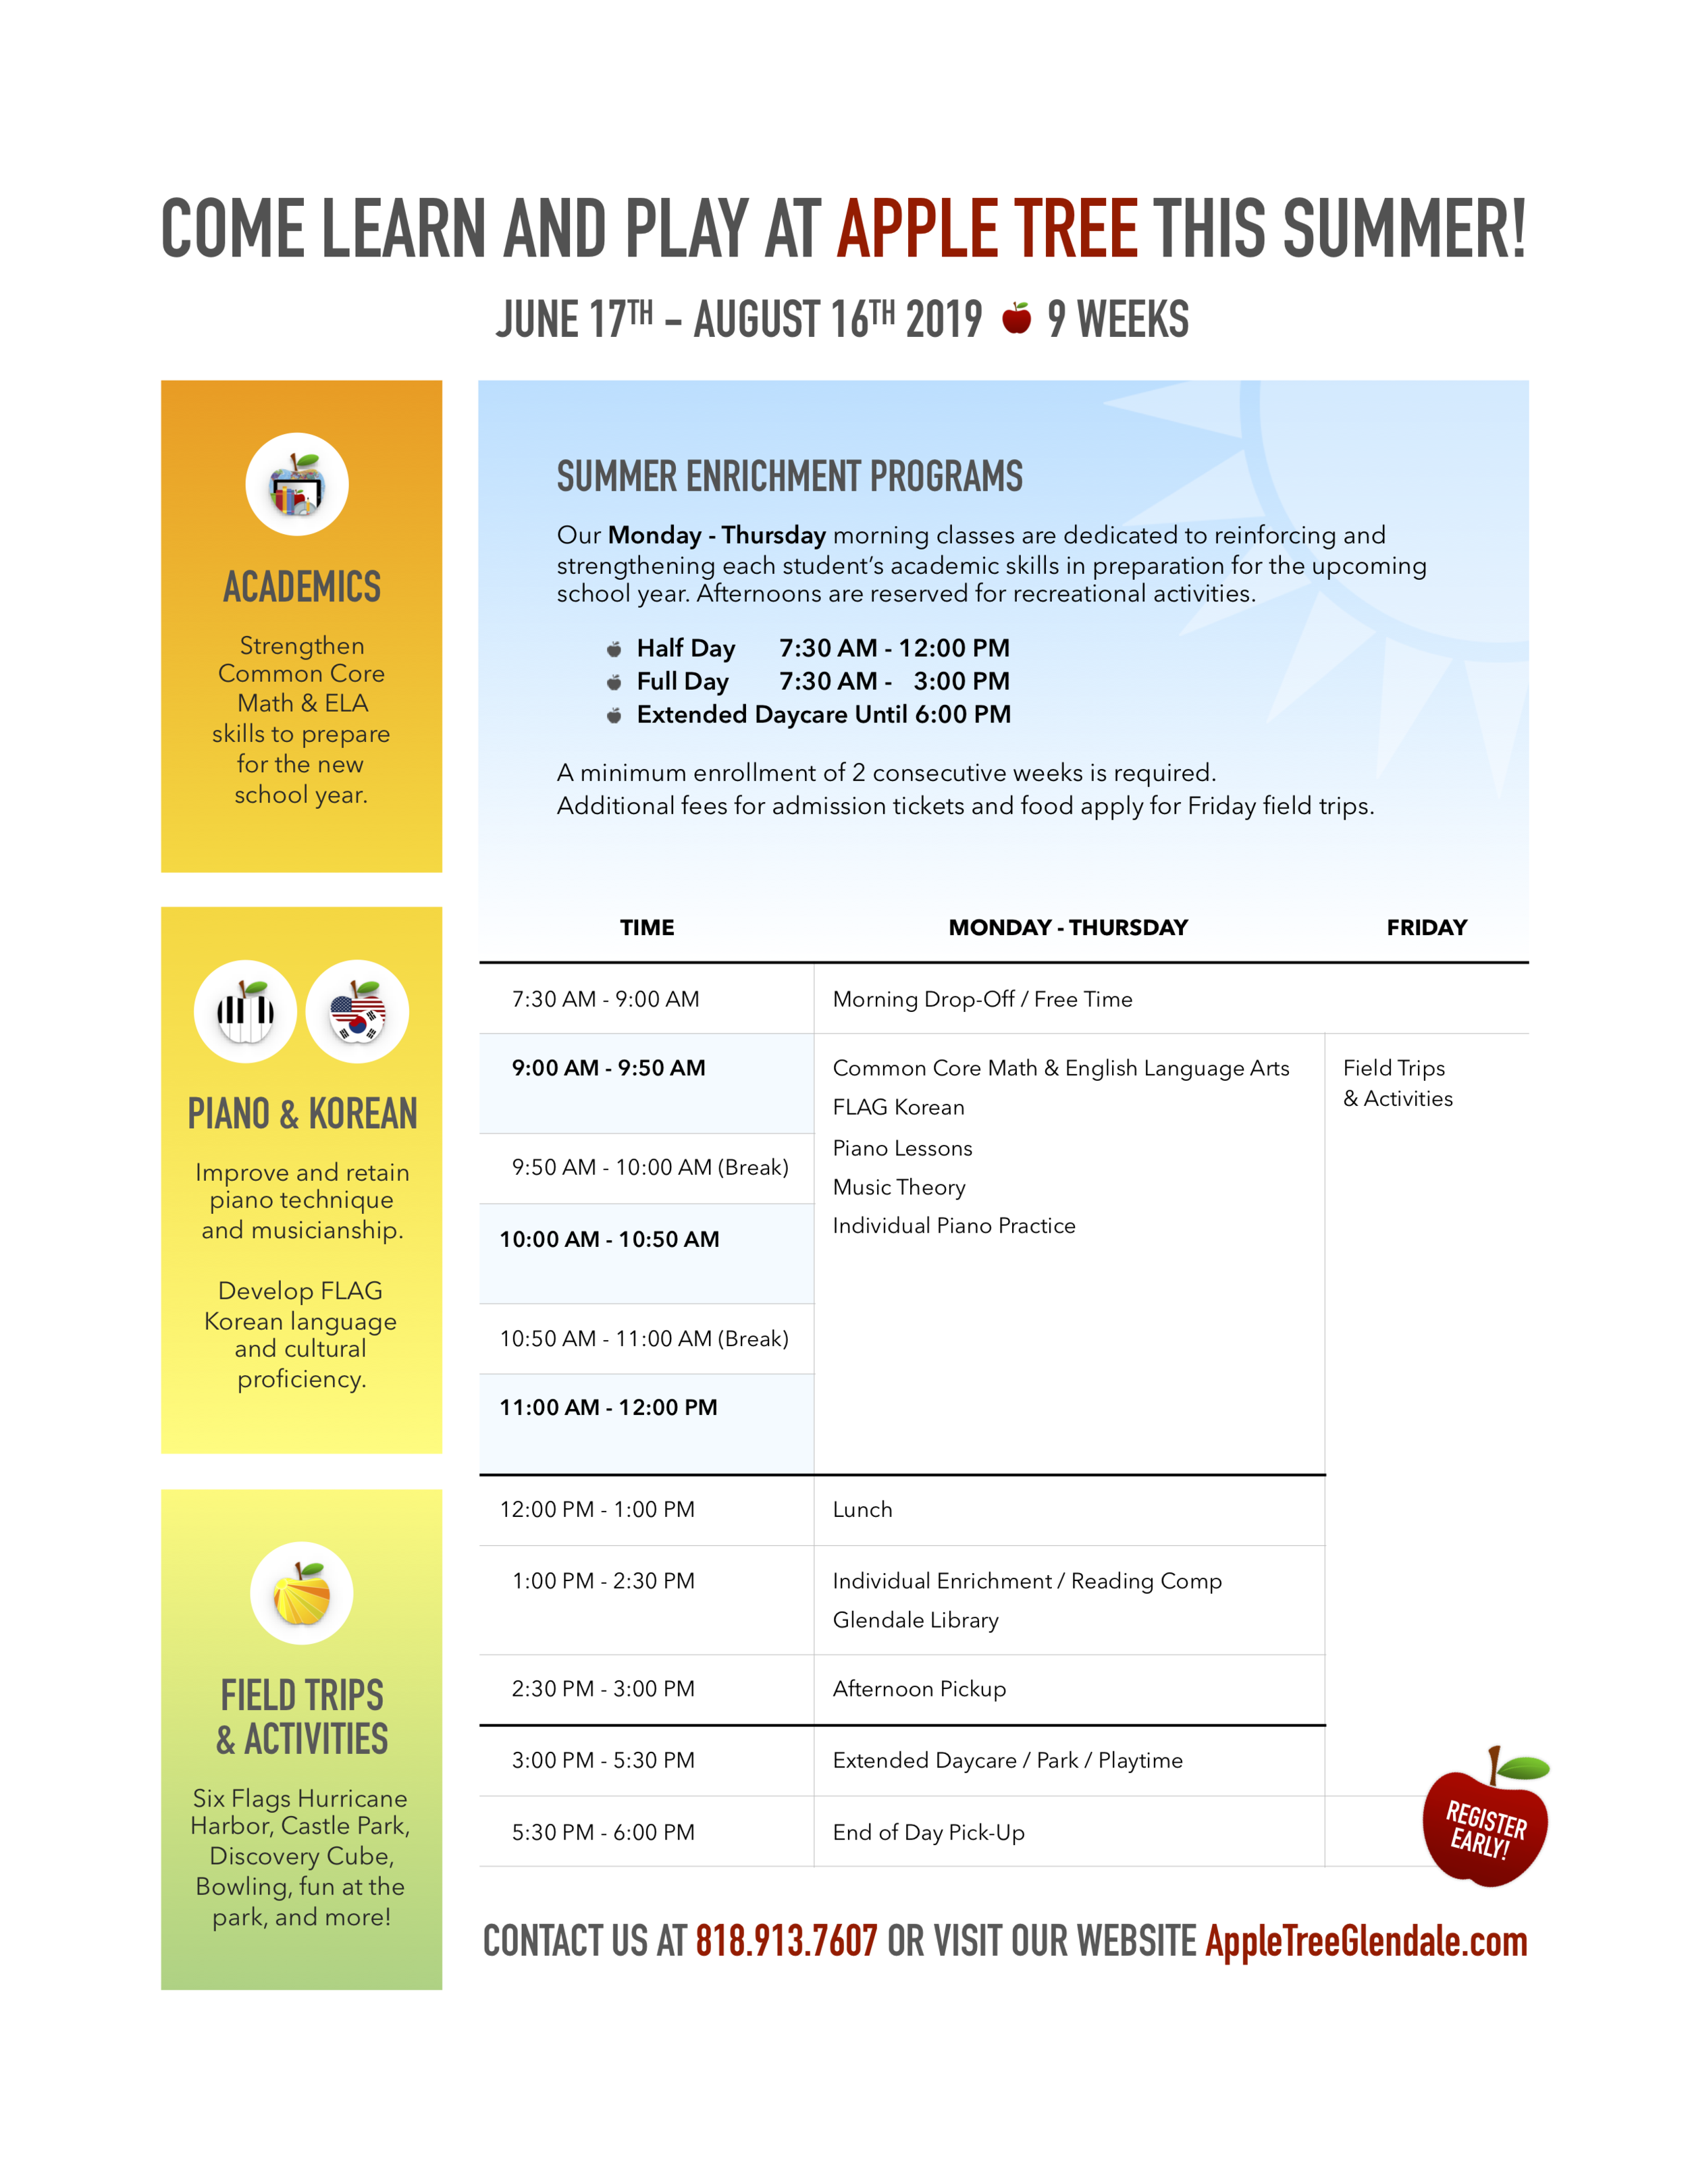 apple-tree-learning-center-summer-2019.png